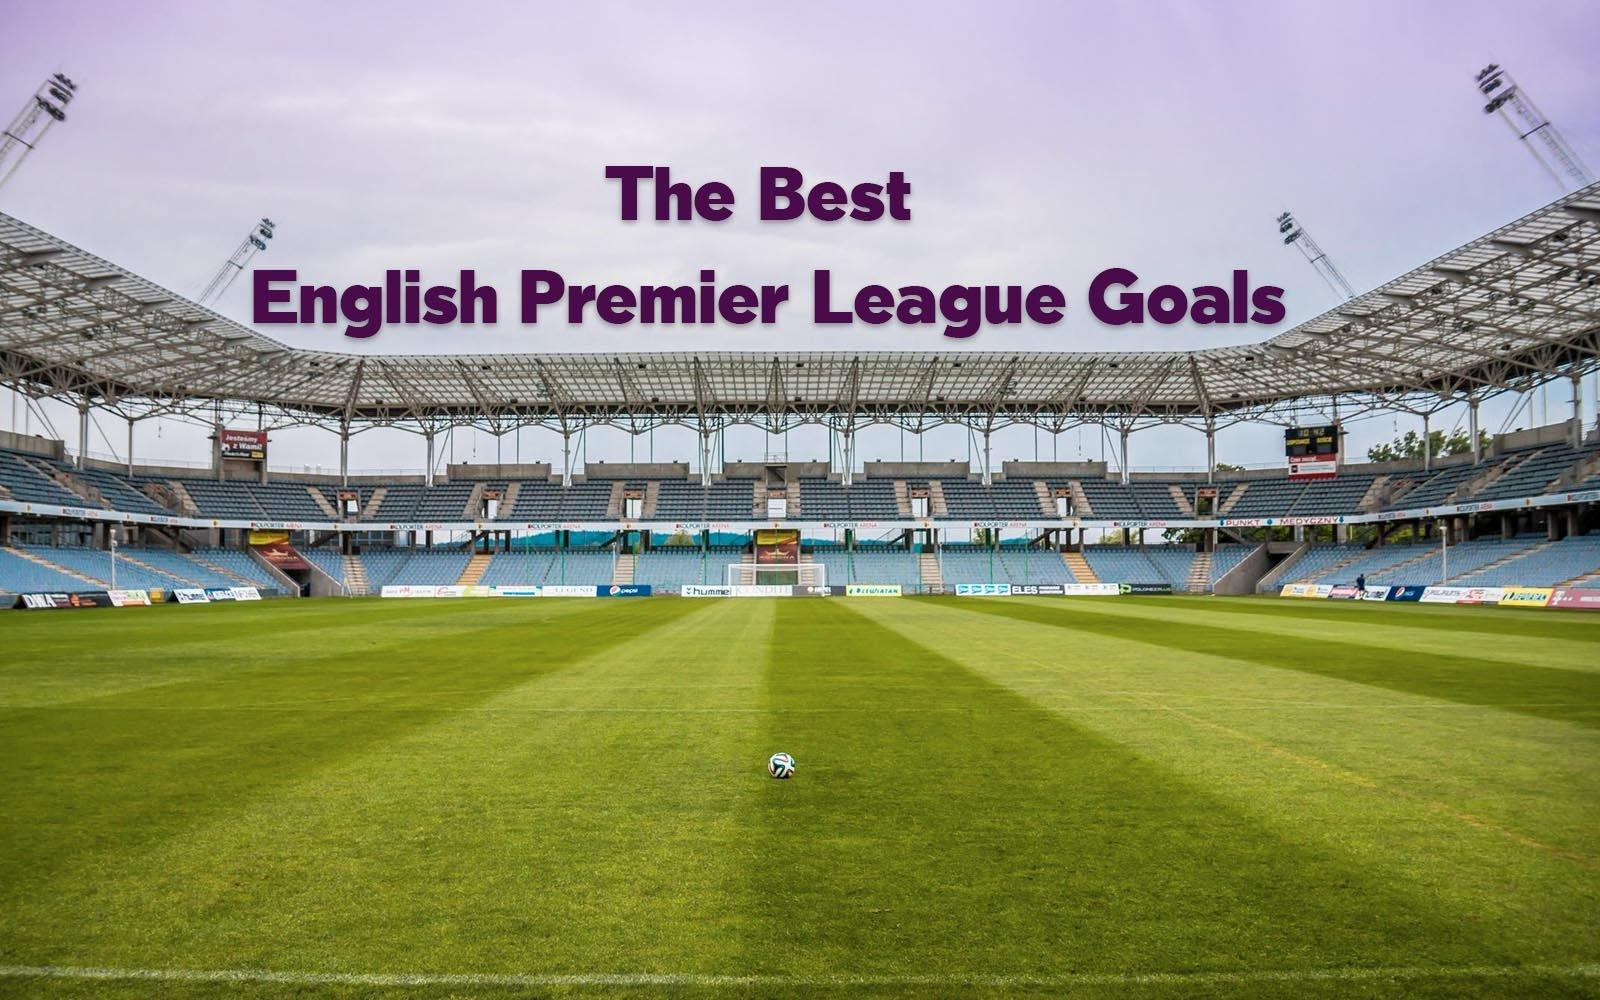 The Top 10 Premier League Soccer Goals of All Time